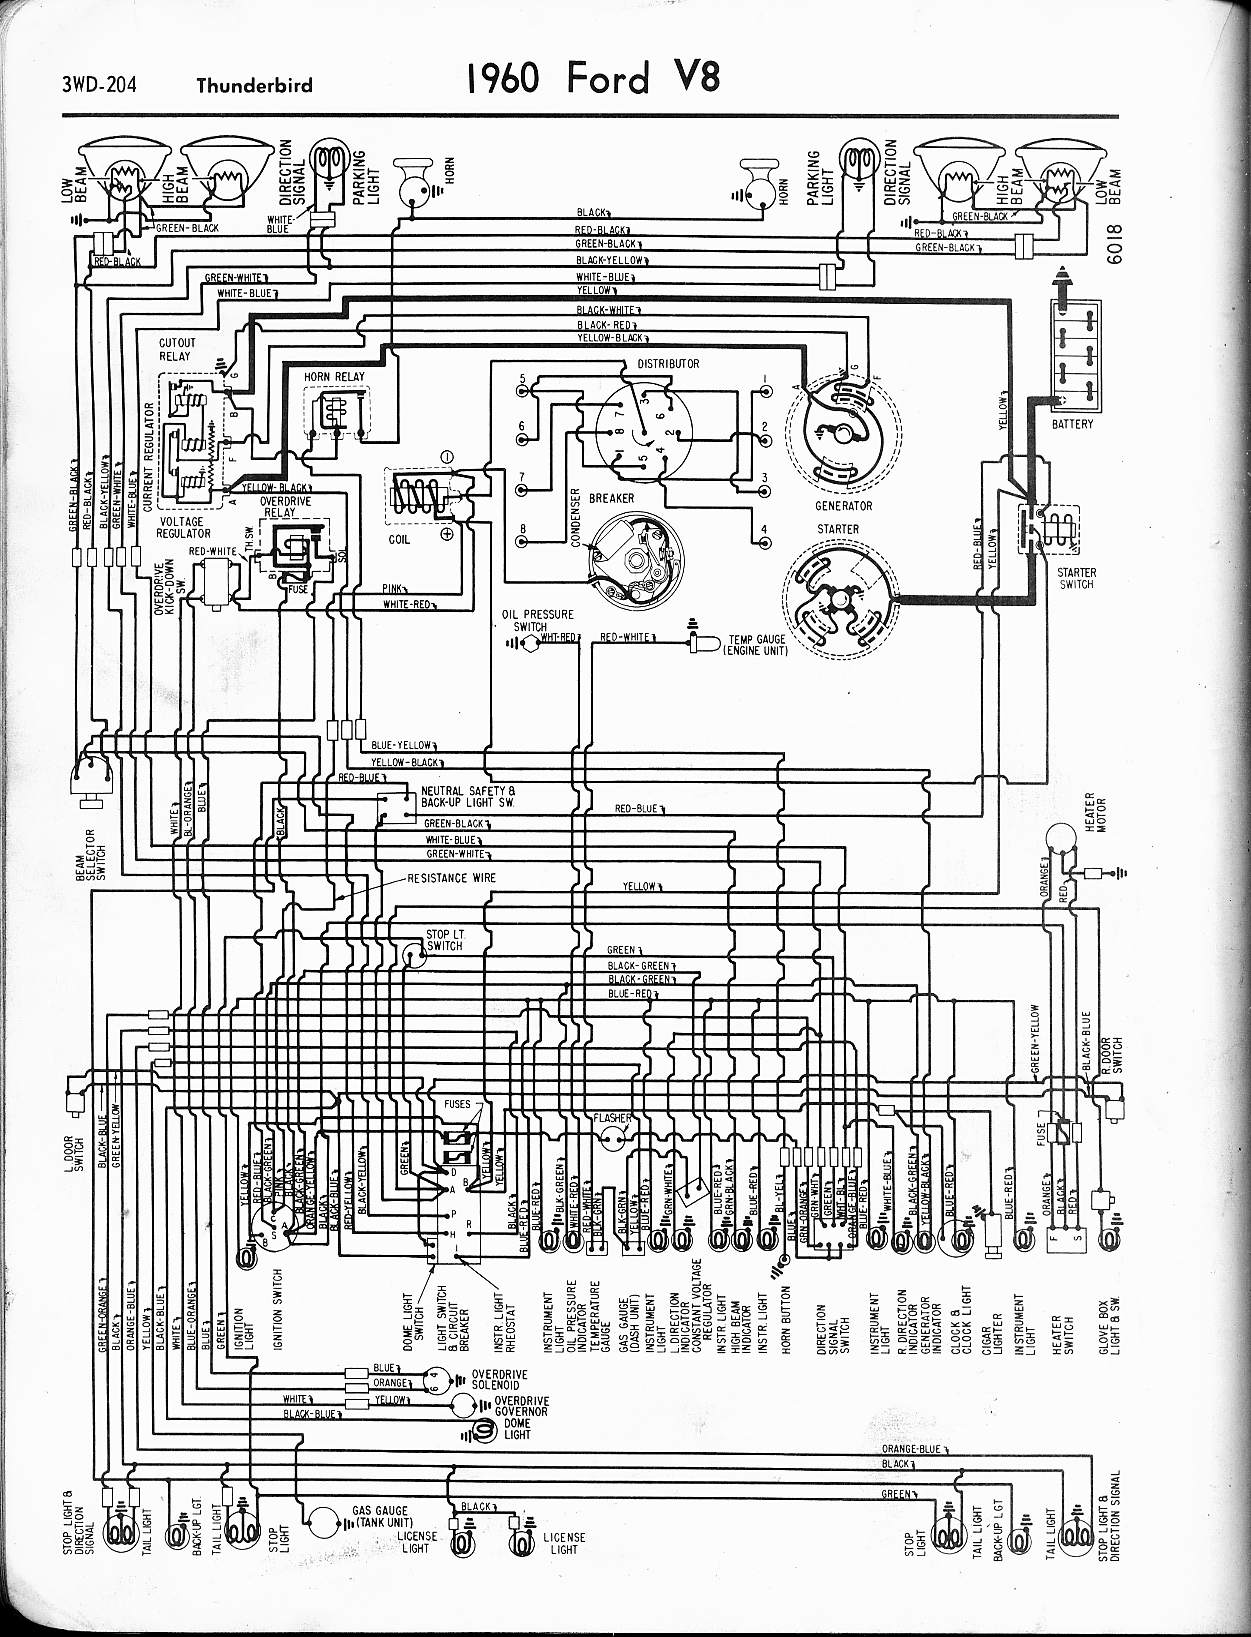 1965 ford f100 wiring diagram additionally 1963 ford falcon wiring rh mrguitar co 1964 Ford Ranchero Wiring-Diagram 1964 Falcon Wiring-Diagram